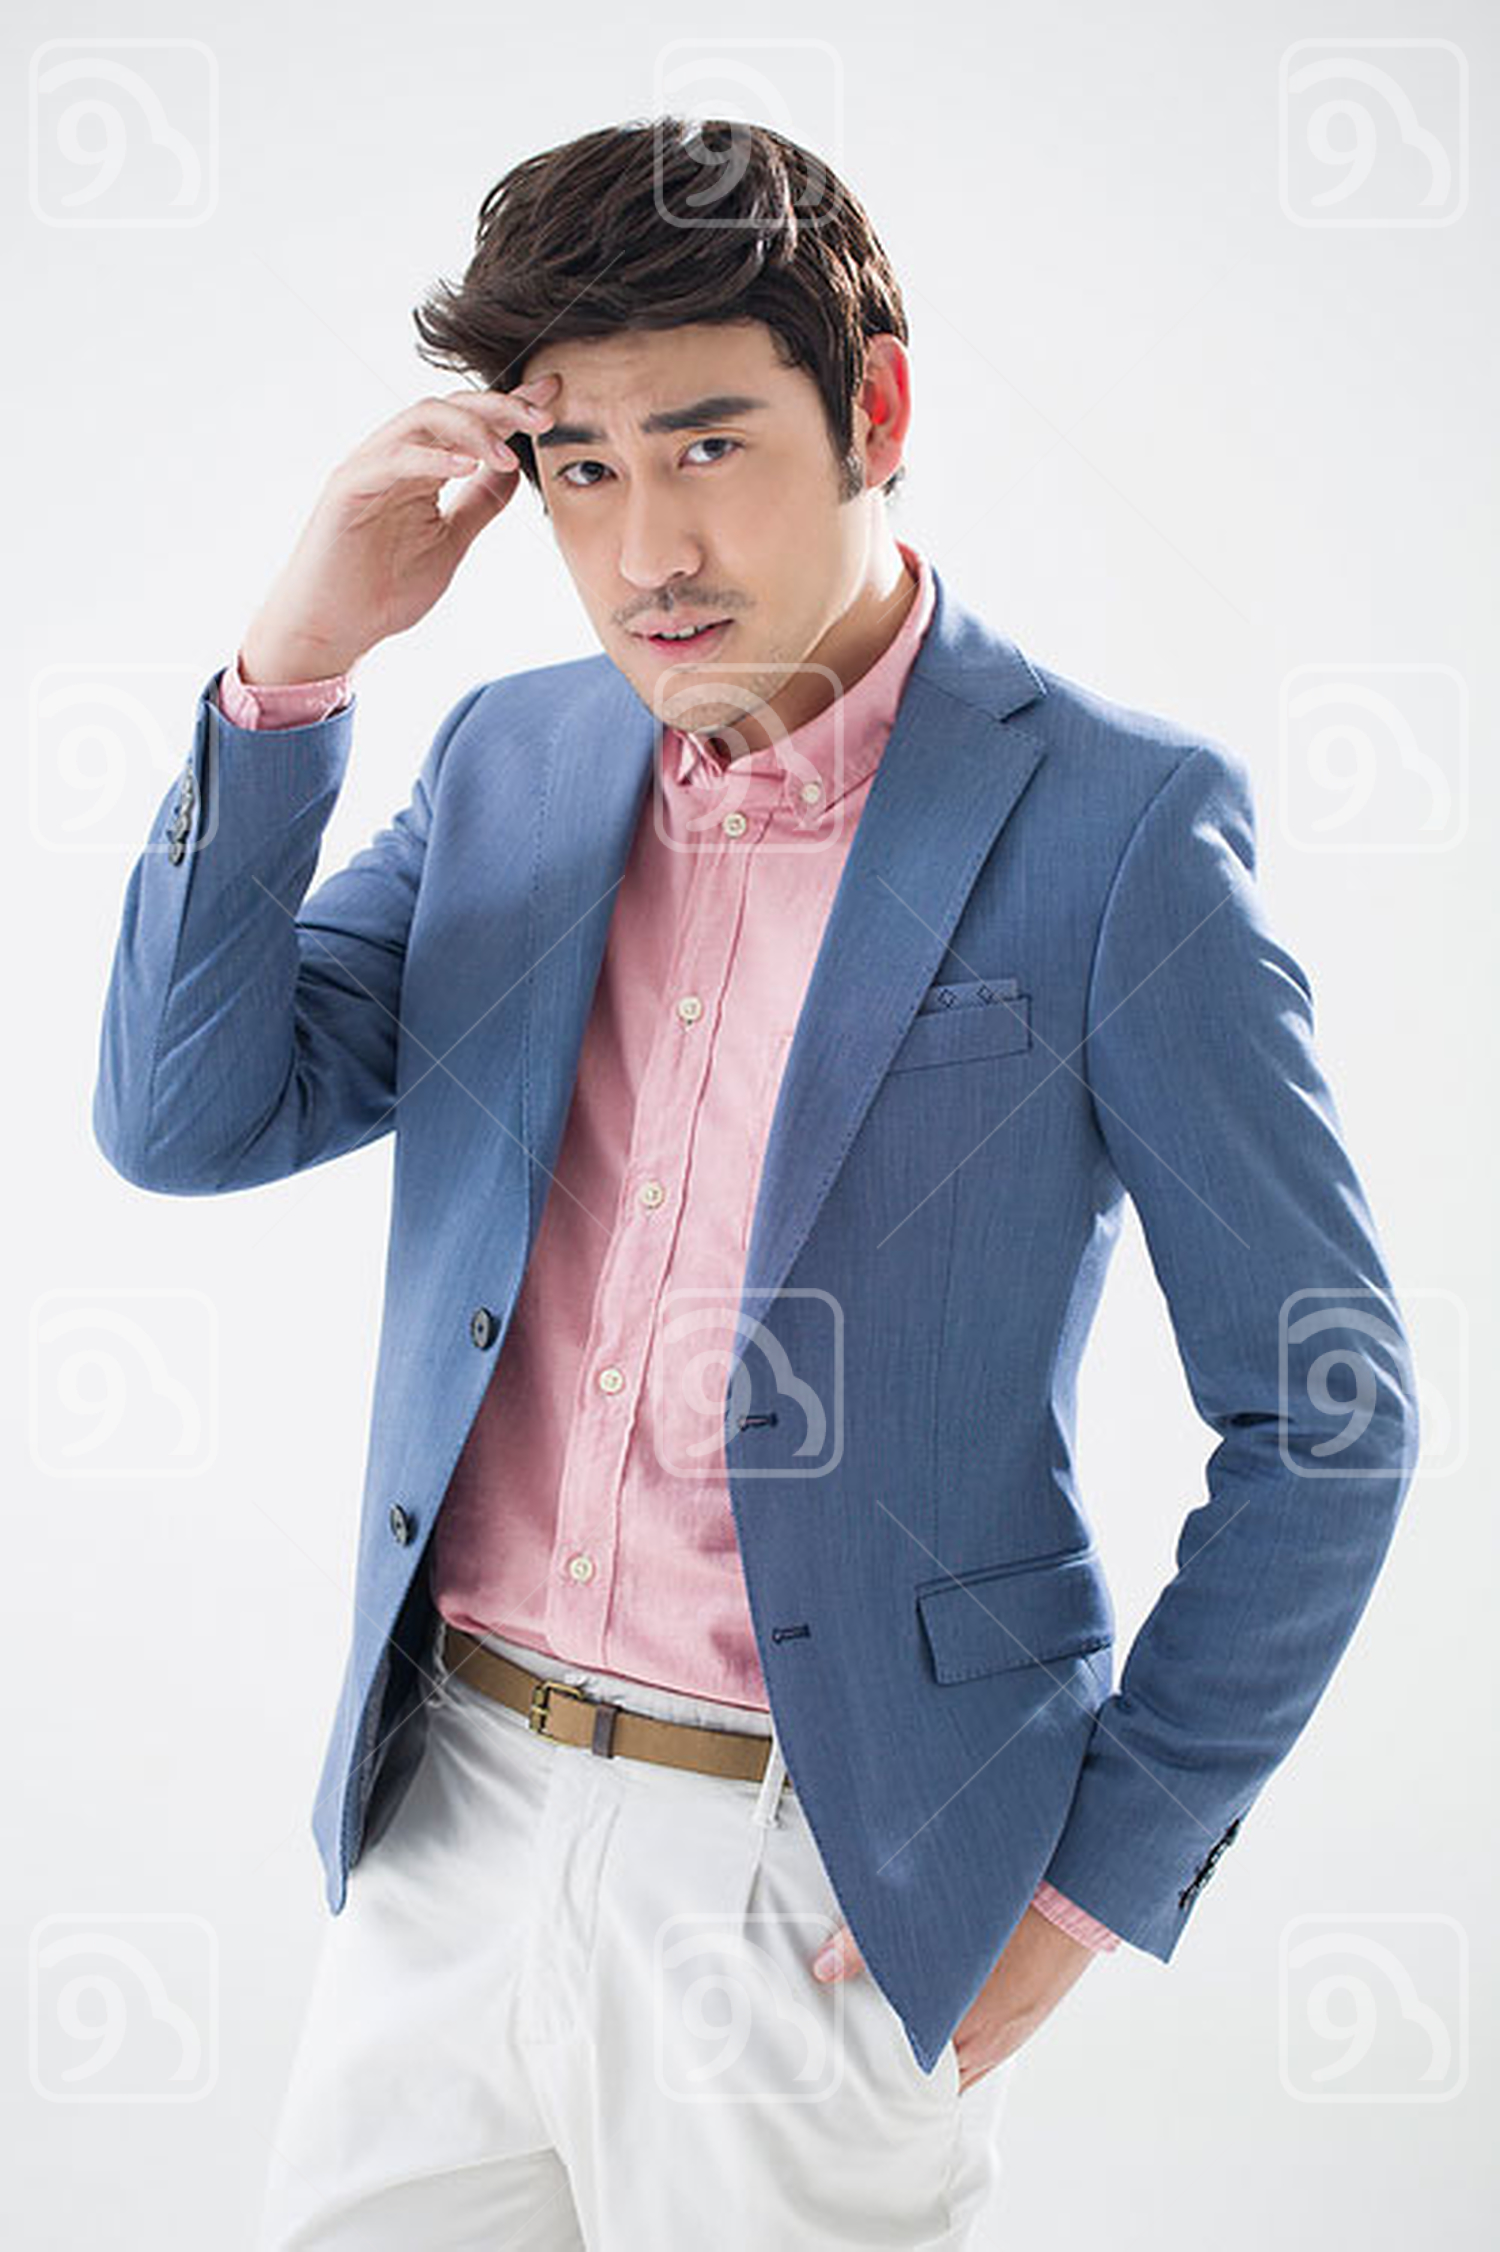 Fashionable young Chinese man